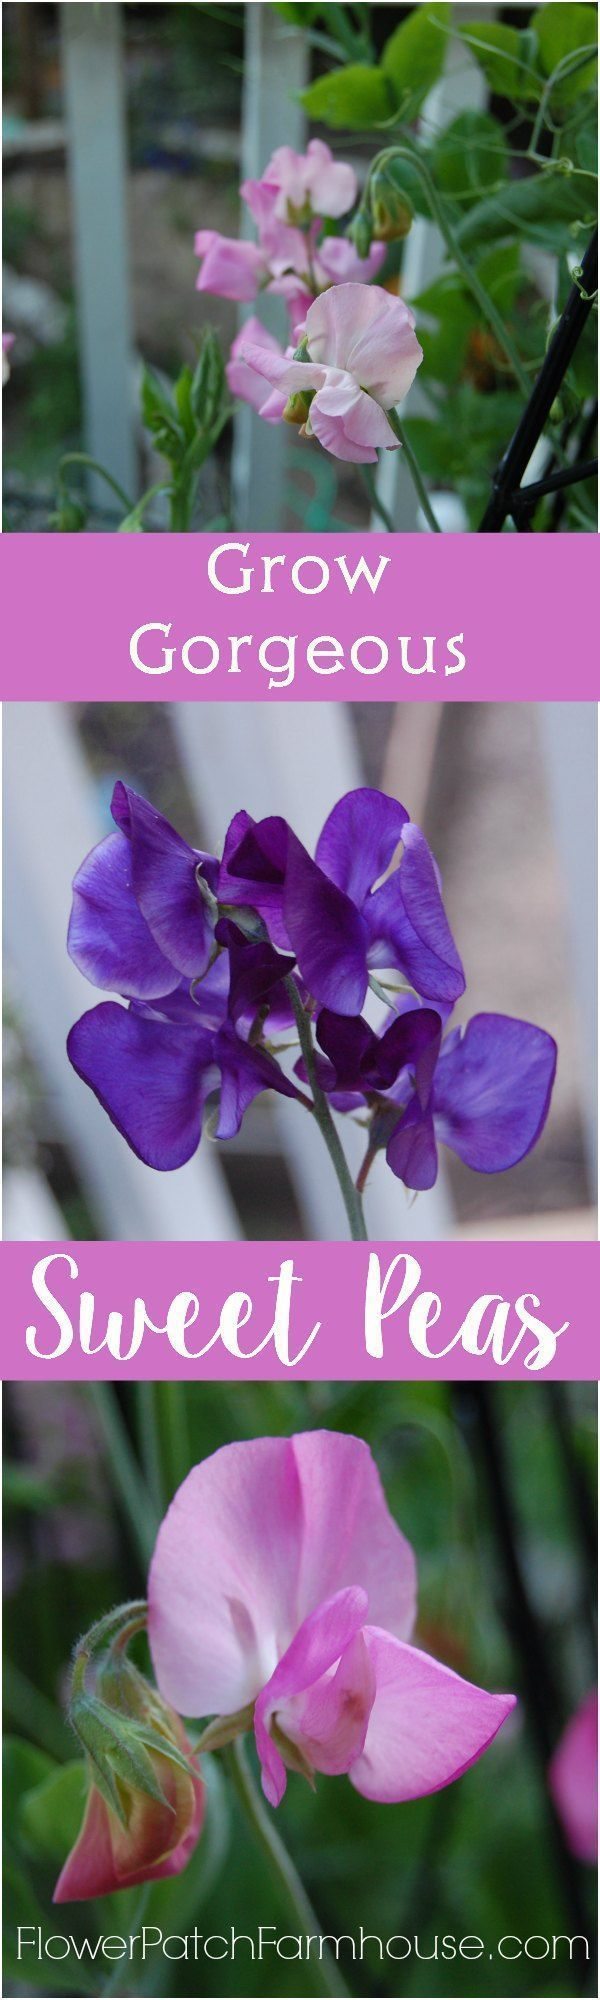 How to Grow Gorgeous Sweet Peas, it is so easy and the payoff is oh so sweet! http://FlowerPatchFarmhouse.com